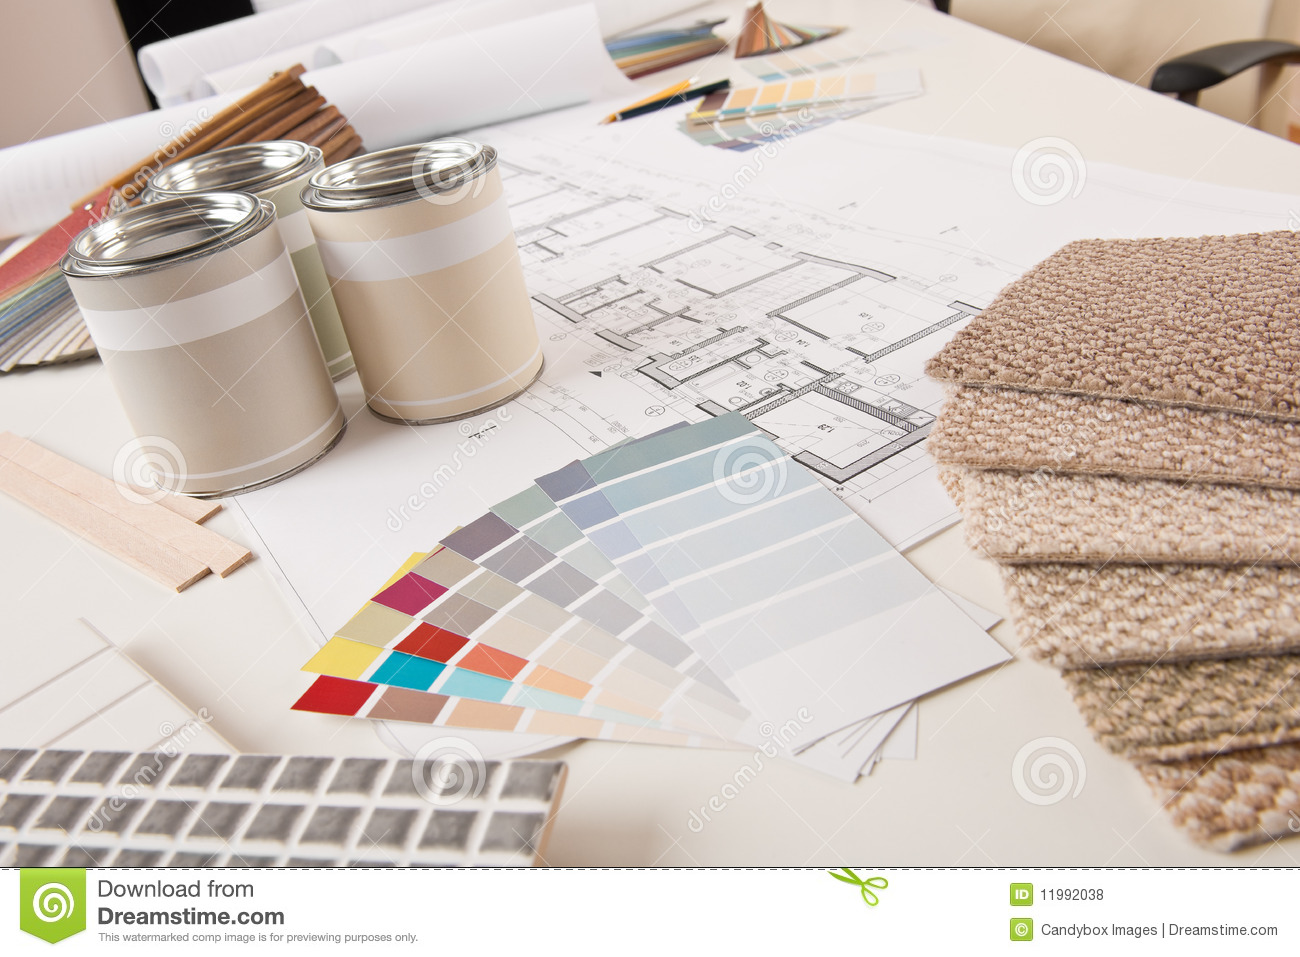 Office of interior designer with paint